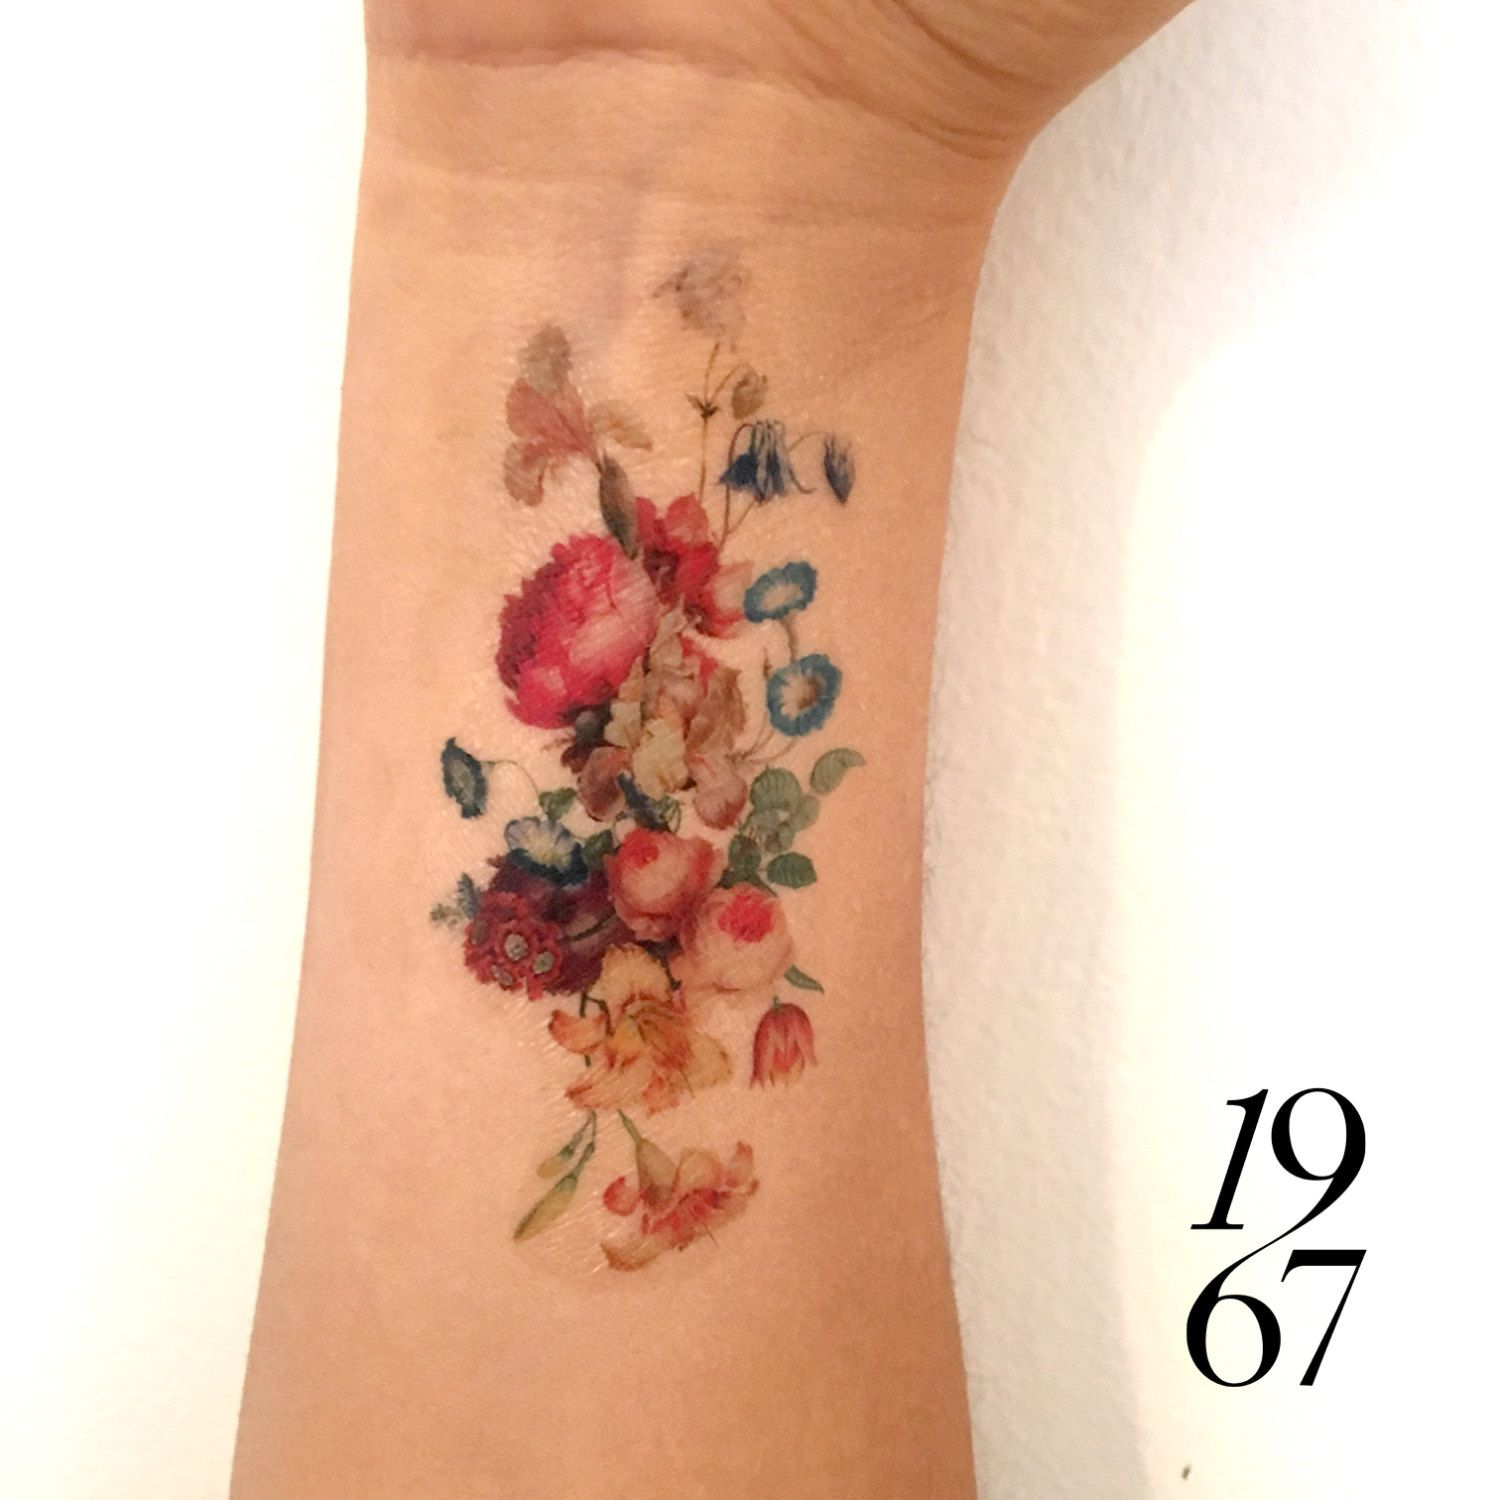 Vintage floral temporary tattoo fresh bouquet of flowers tattoo